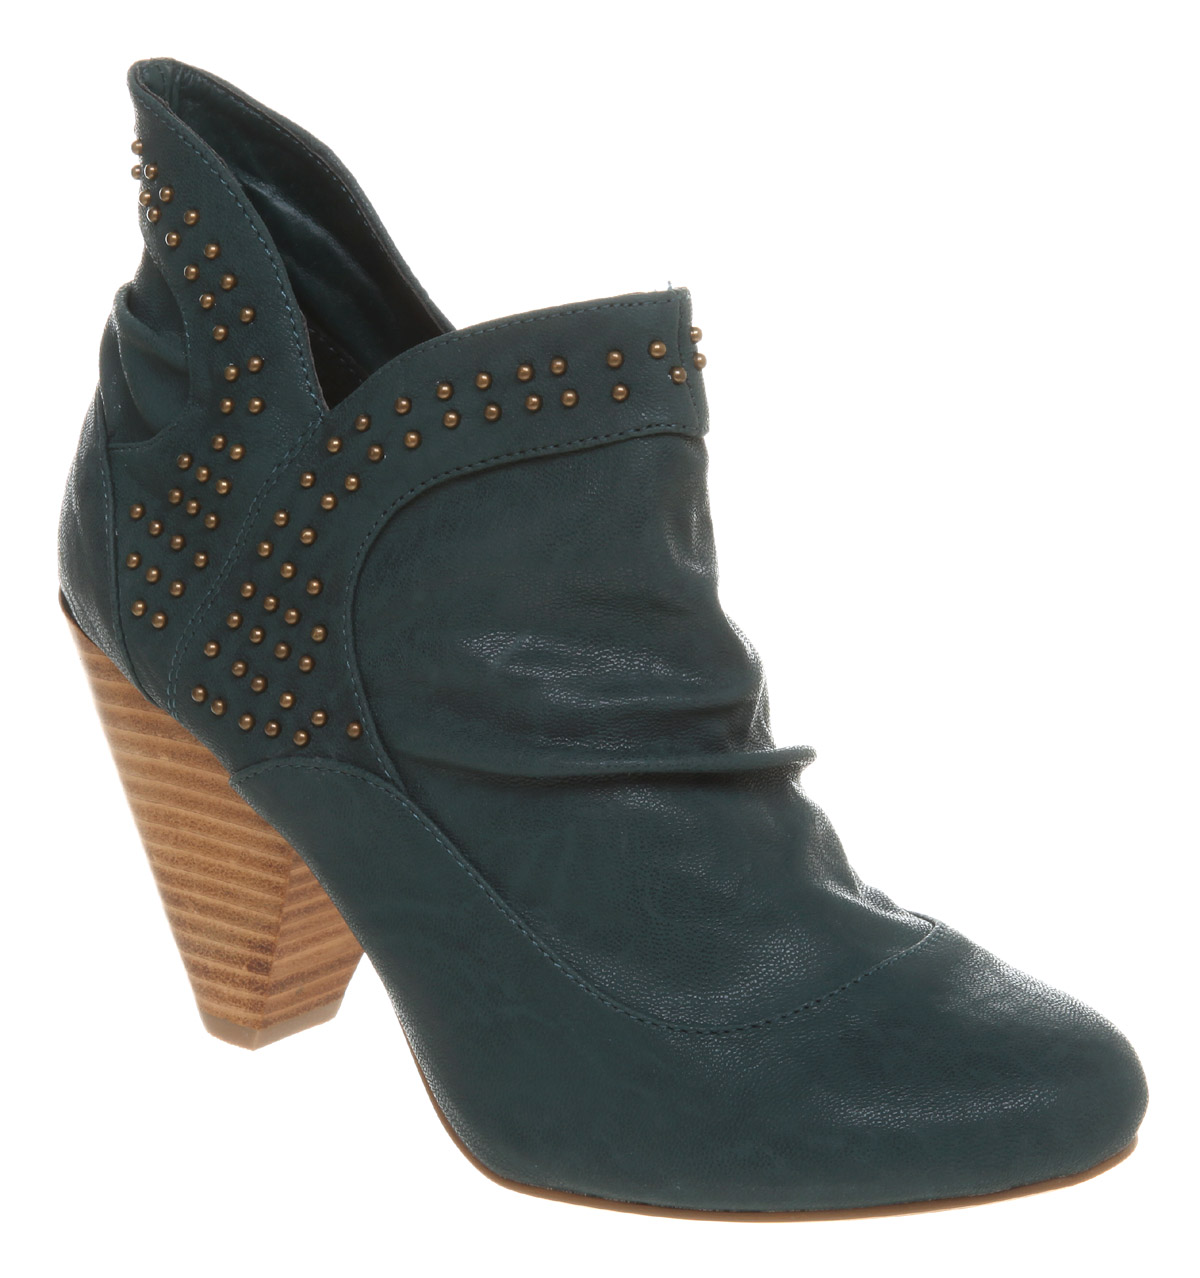 vegan teal ankle boots